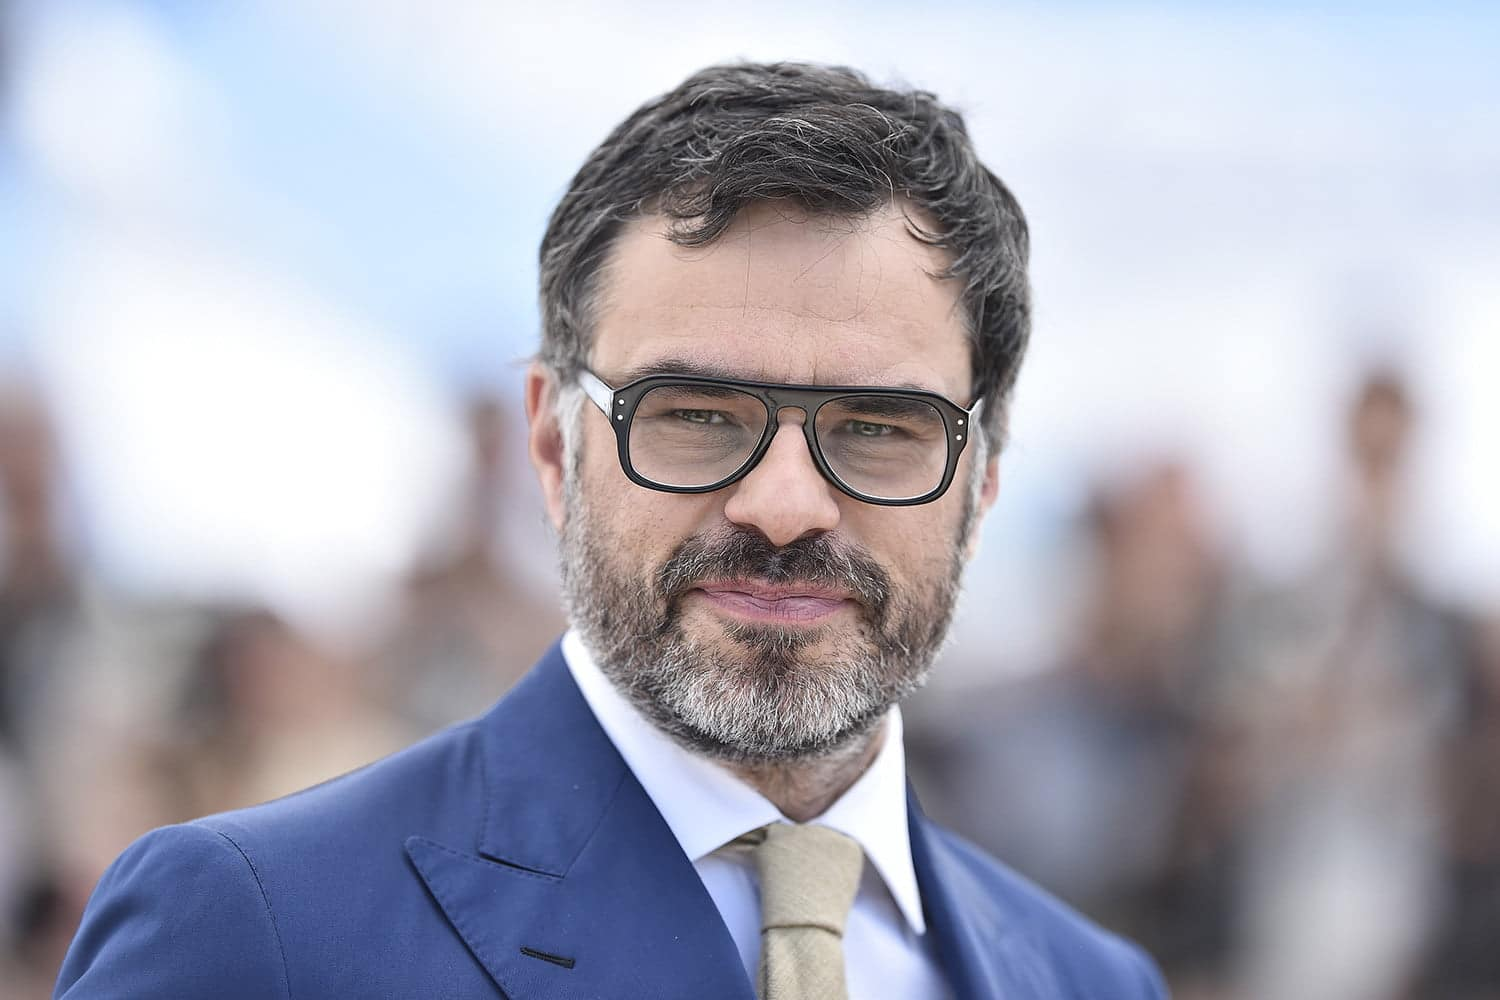 Jemaine Clement New Zealand Actor, Musician, Comedian, Sreenwriter and Director